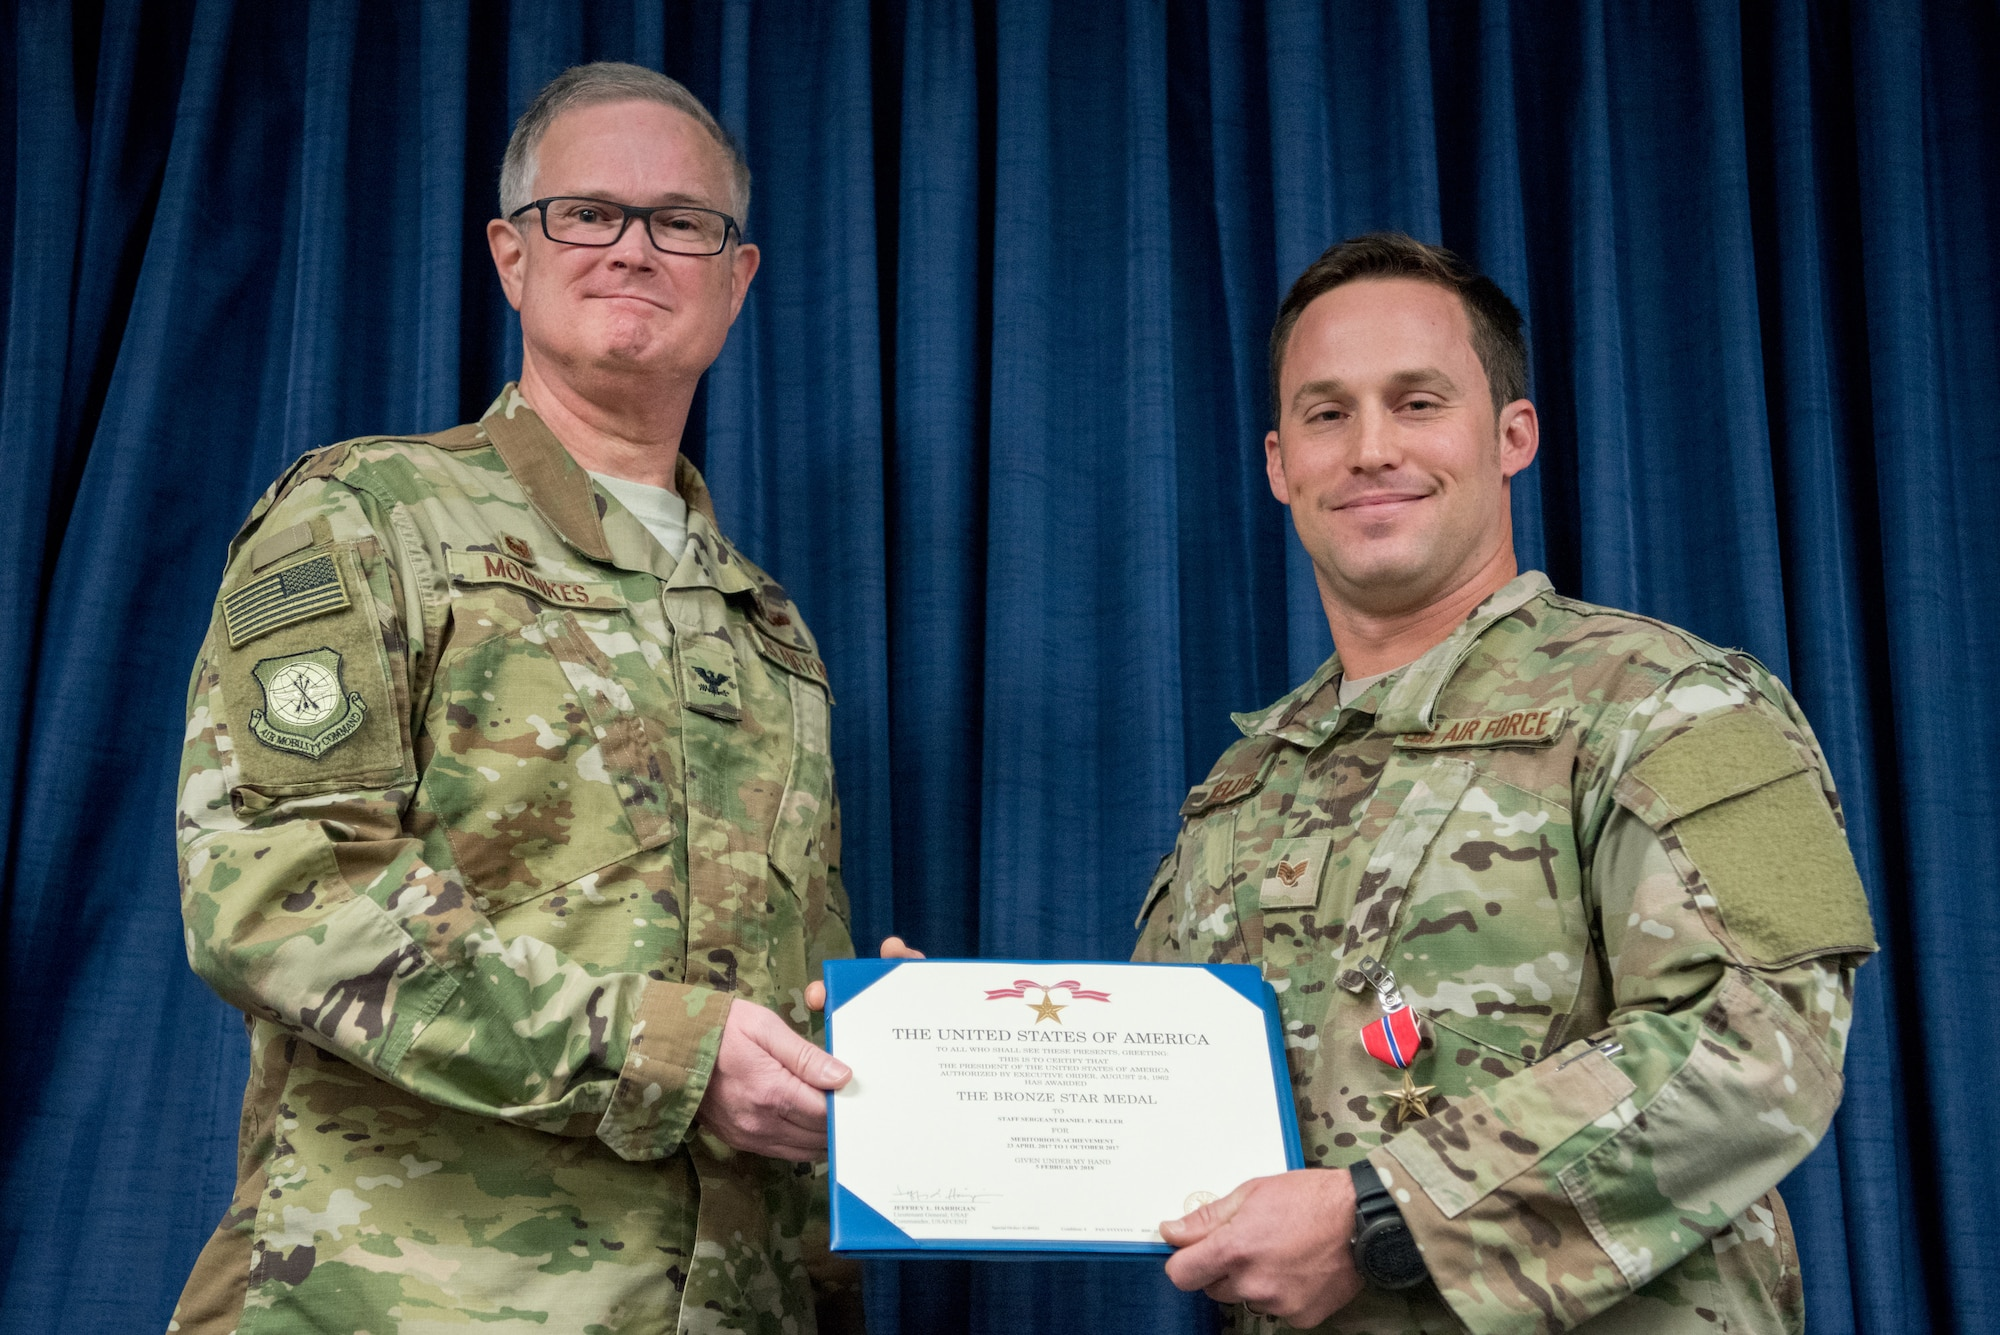 Staff Sgt. Daniel P. Keller (right), a combat controller for the 123rd Special Tactics Squadron, receives the Bronze Star Medal from Col. David Mounkes, commander of the 123rd Airlift Wing, during a ceremony at the Kentucky Air National Guard Base in Louisville, Ky., Nov. 17, 2018. Keller distinguished himself in 2017 for meritorious service in Eastern Afghanistan. His performance resulted in seven medical evacuations of American and partner forces, 209 enemies killed in action, 11 enemies wounded in action, and 163 defensive fighting positions destroyed. (U.S. Air National Guard photo by Staff Sgt. Joshua Horton)